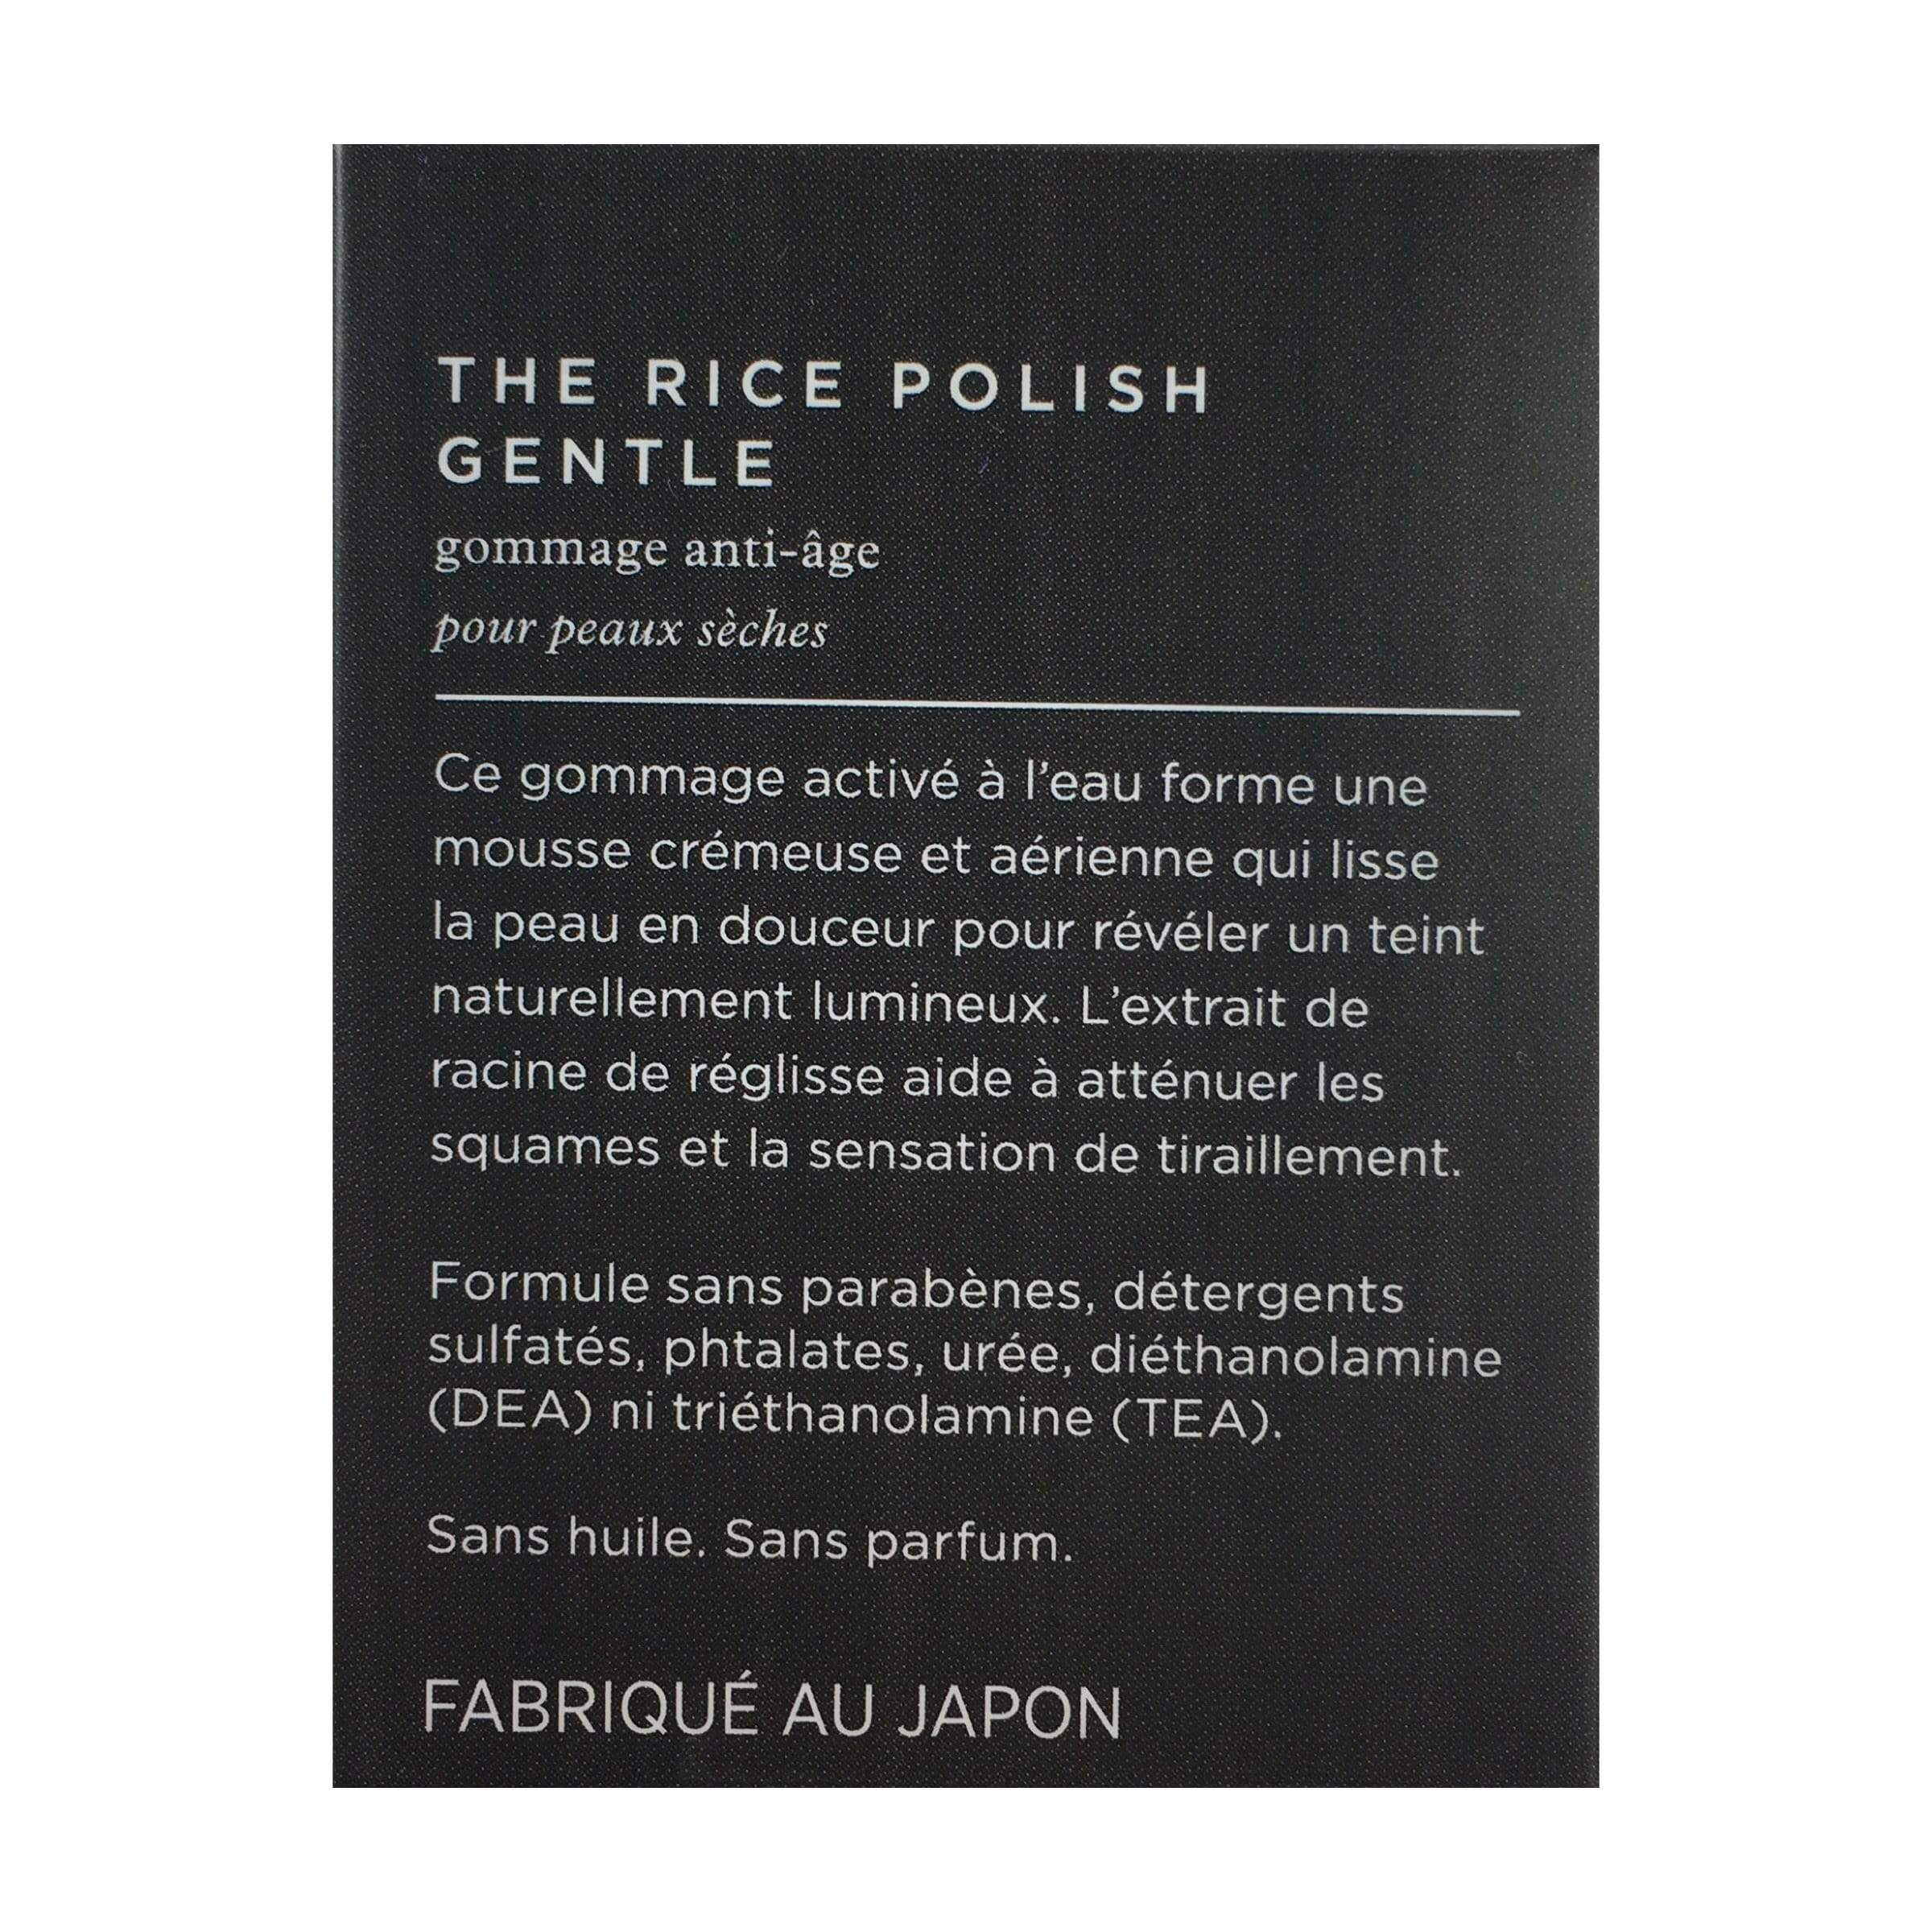 TATCHA The Rice Polish Gentle Foaming Enzyme Powder Travel Size - Dry, 10g | .35oz, Skin Care, London Loves Beauty